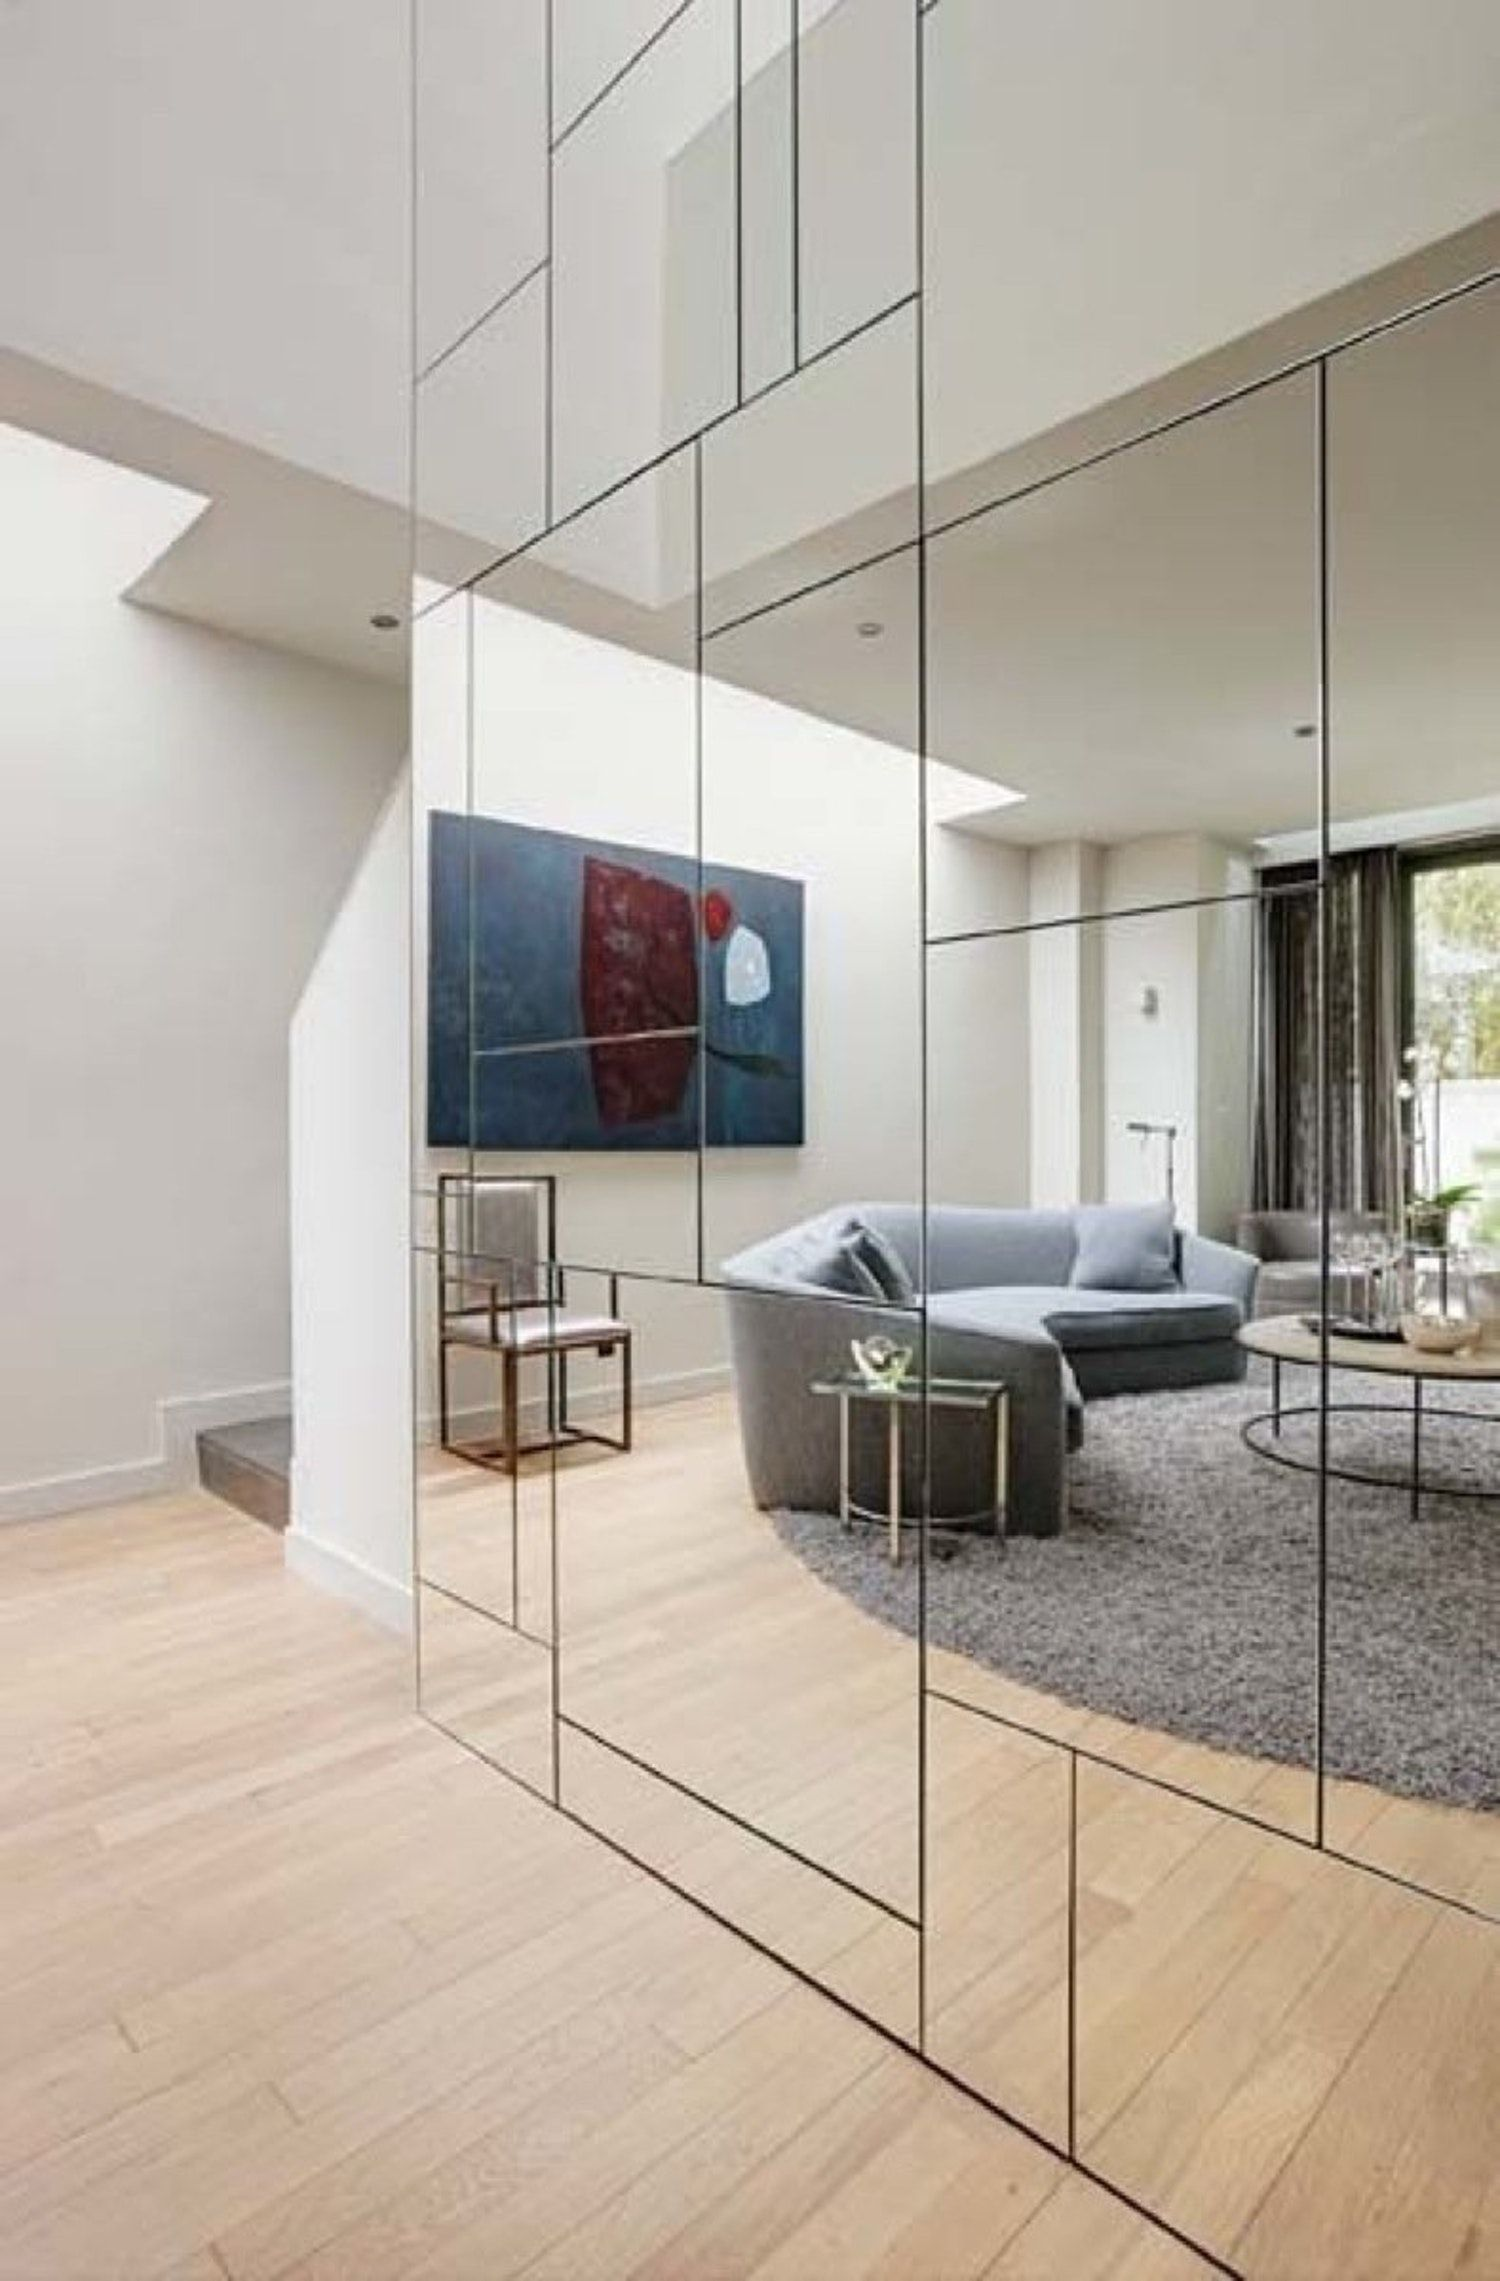 Making mirrored walls modern seven ideas to steal modern walls making mirrored walls modern seven ideas to steal amipublicfo Choice Image